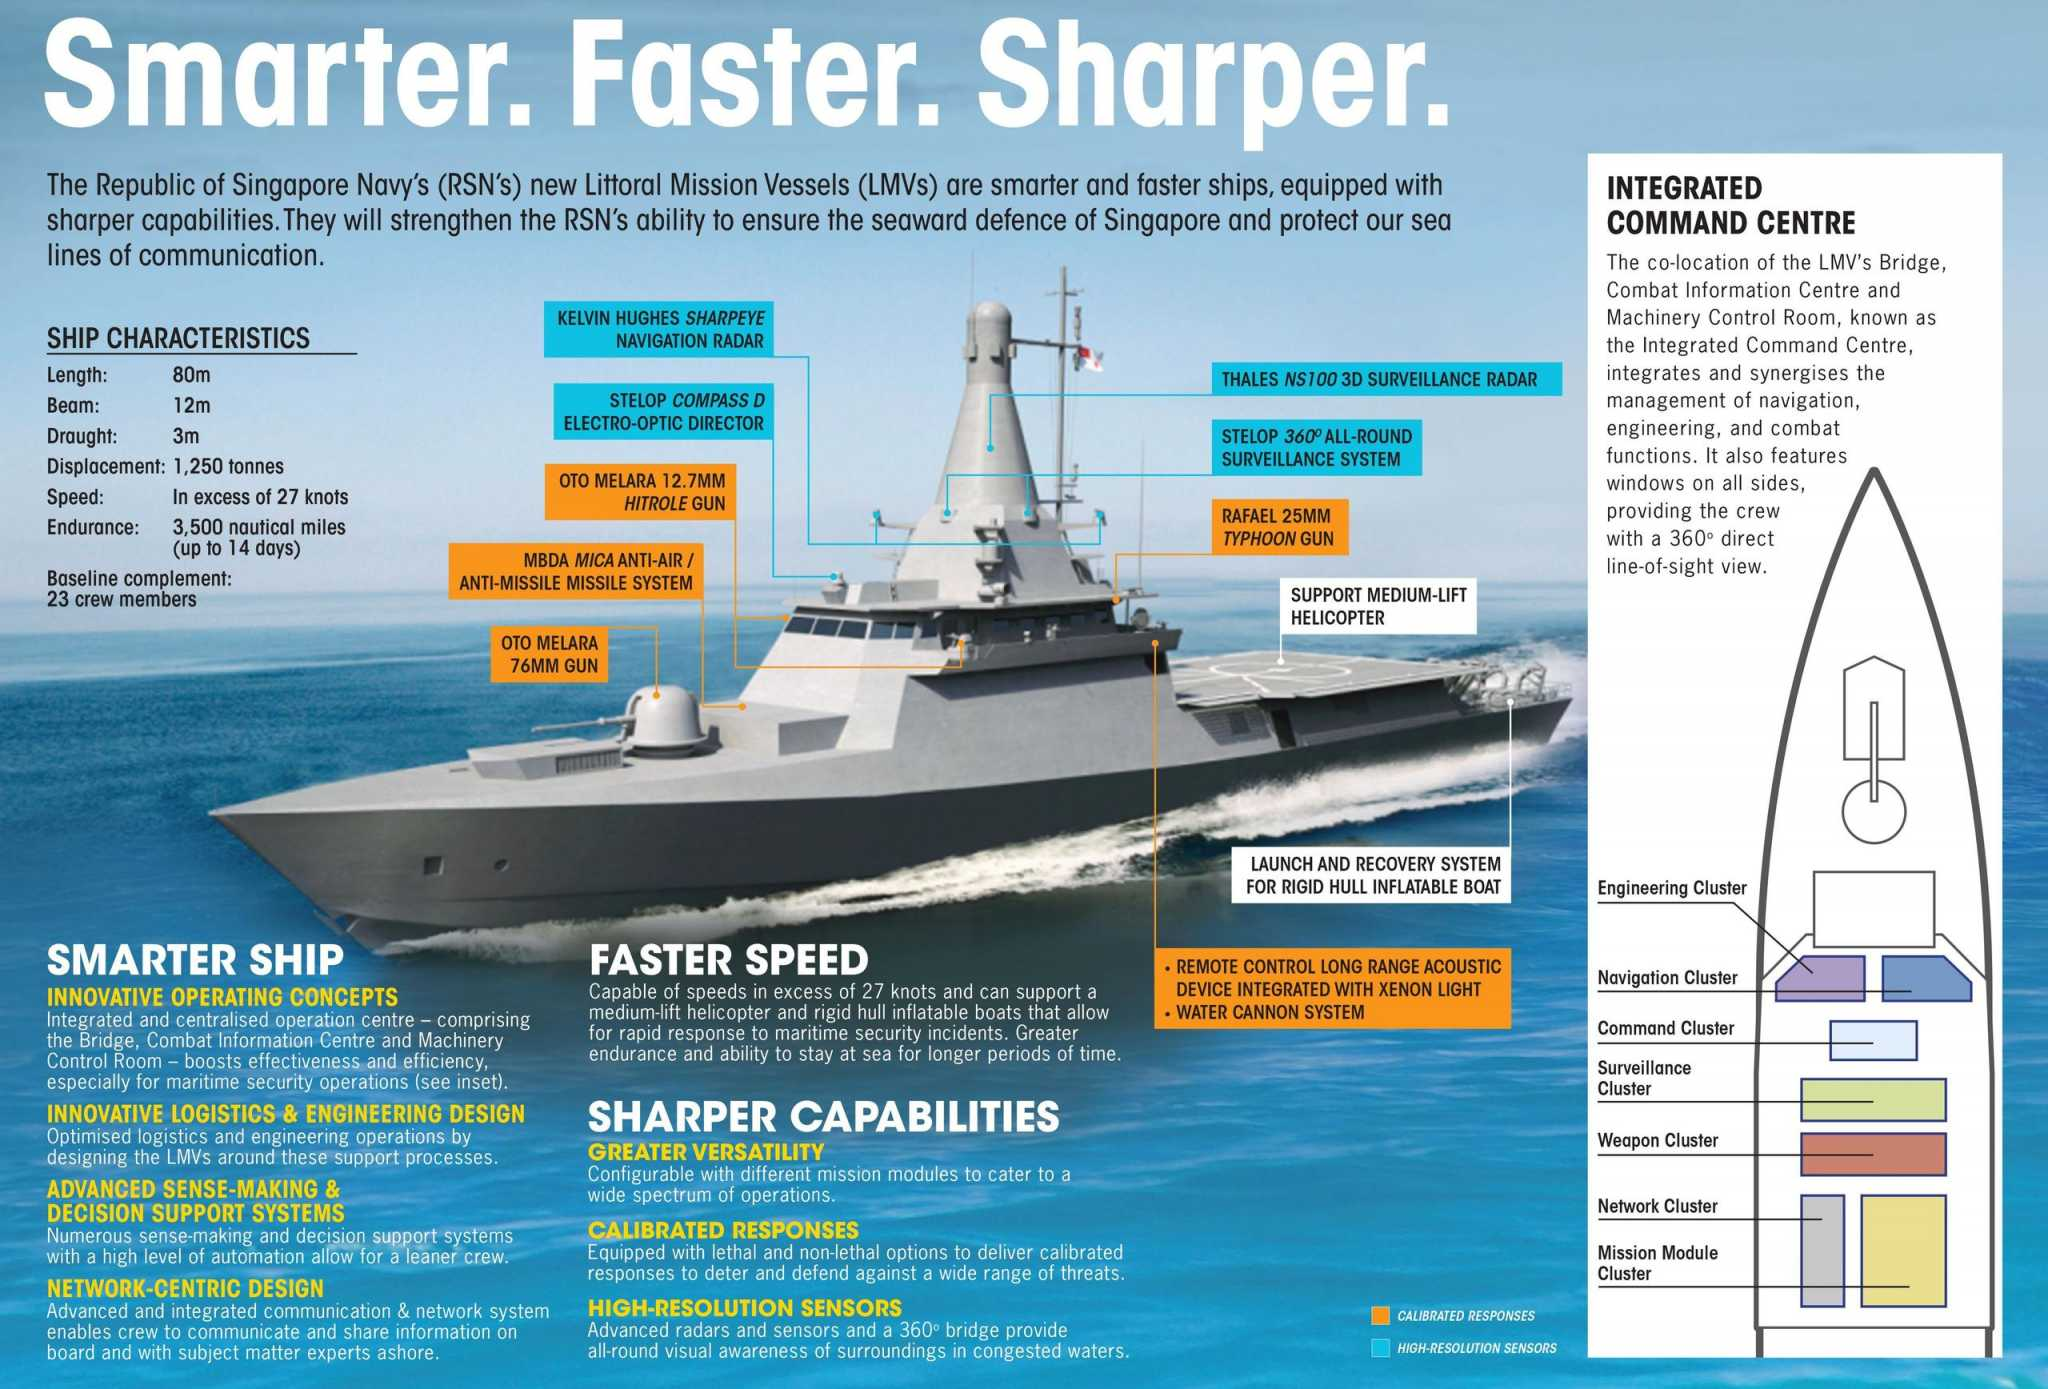 Singapore Navy Launches Second Littoral Mission Vessel